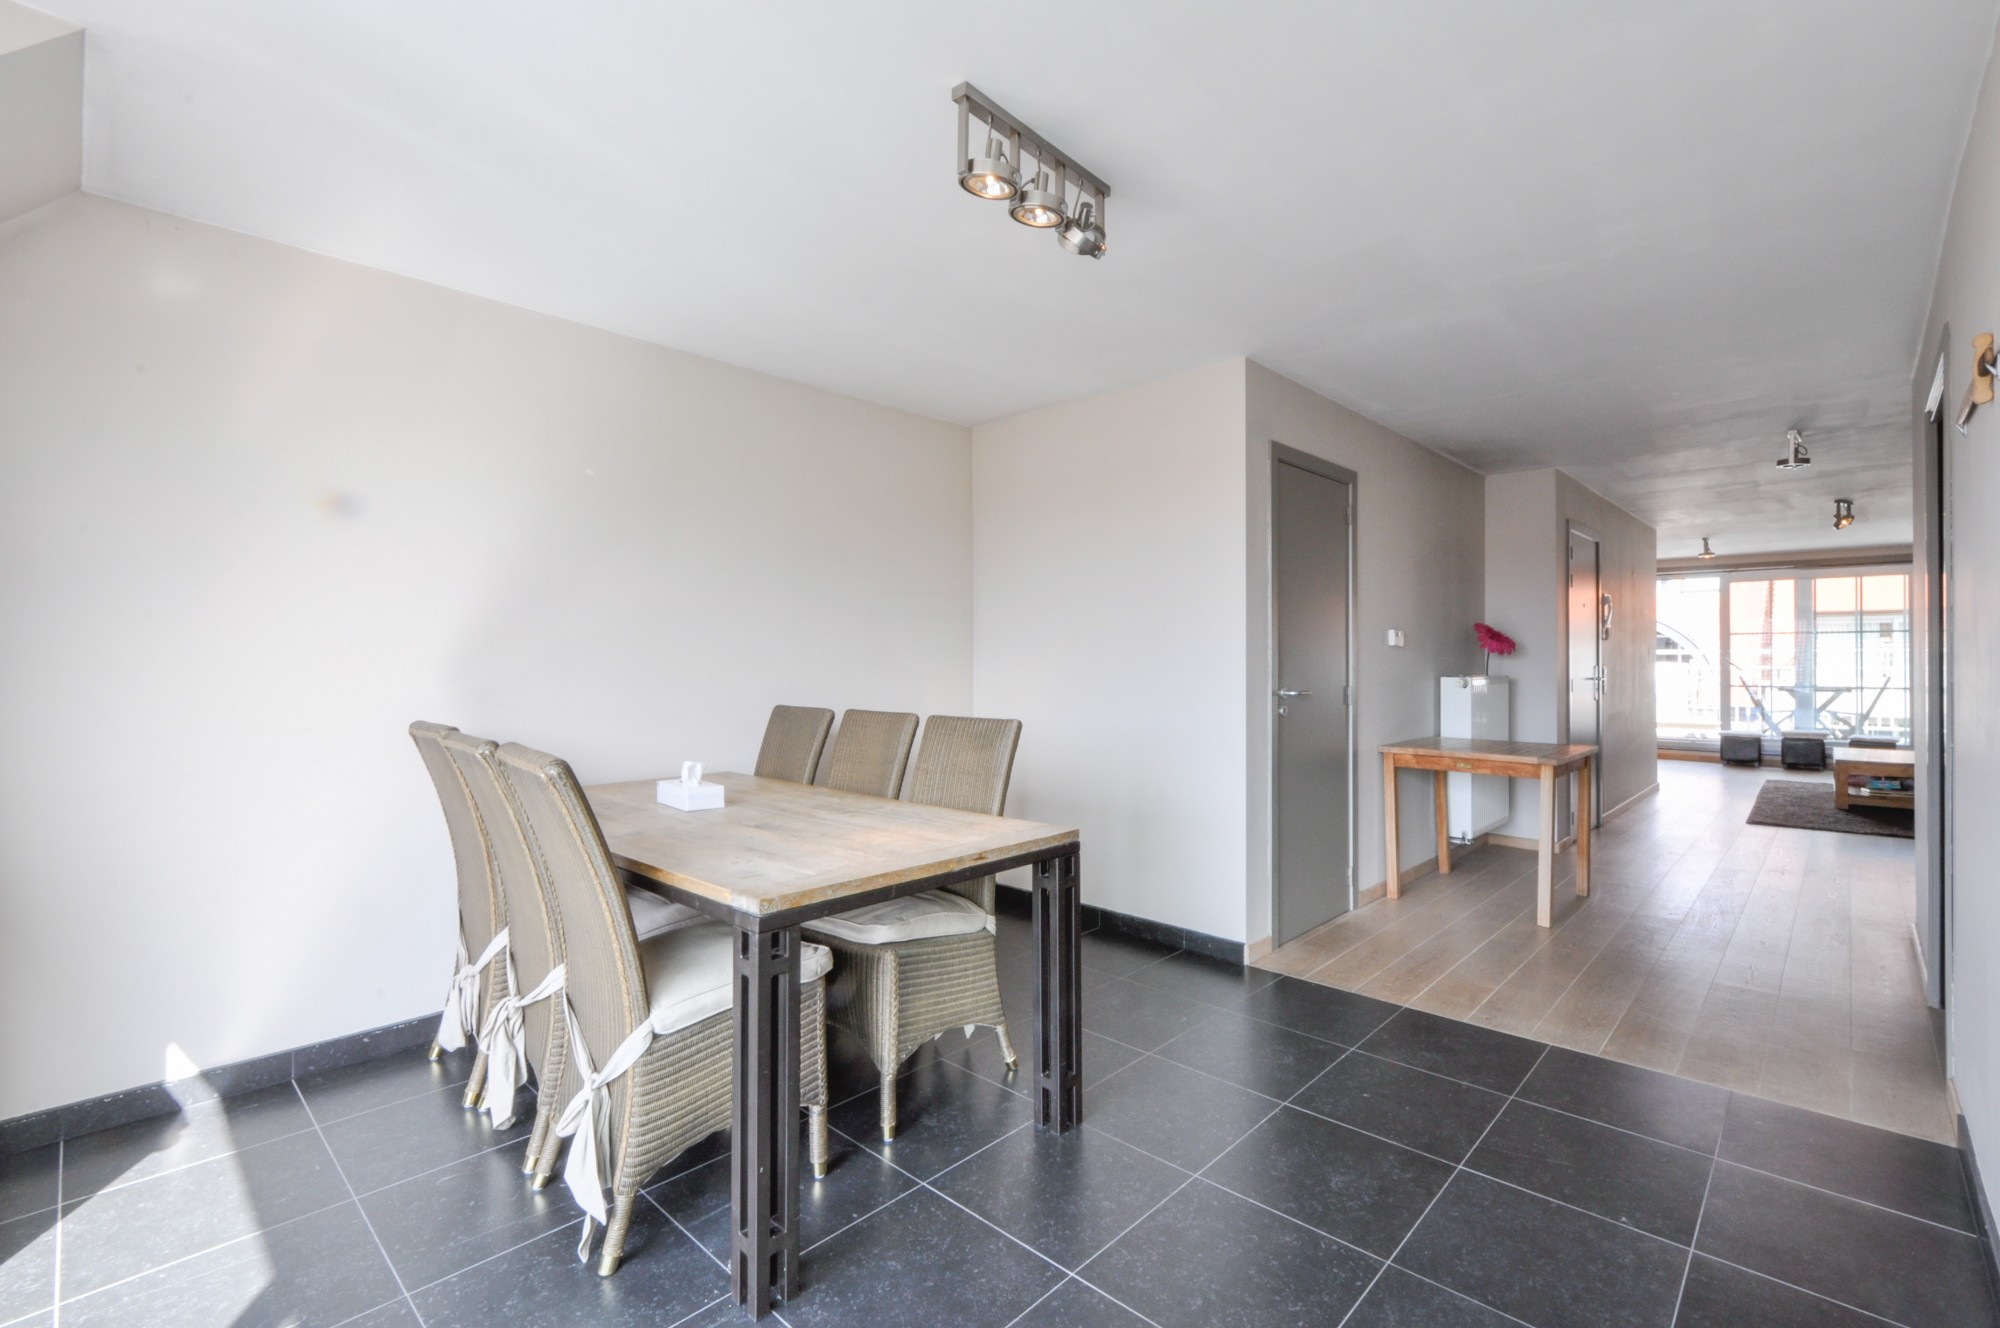 Ventes appartement t3 f3 knokke heist duplex p for Agence immobiliere knokke